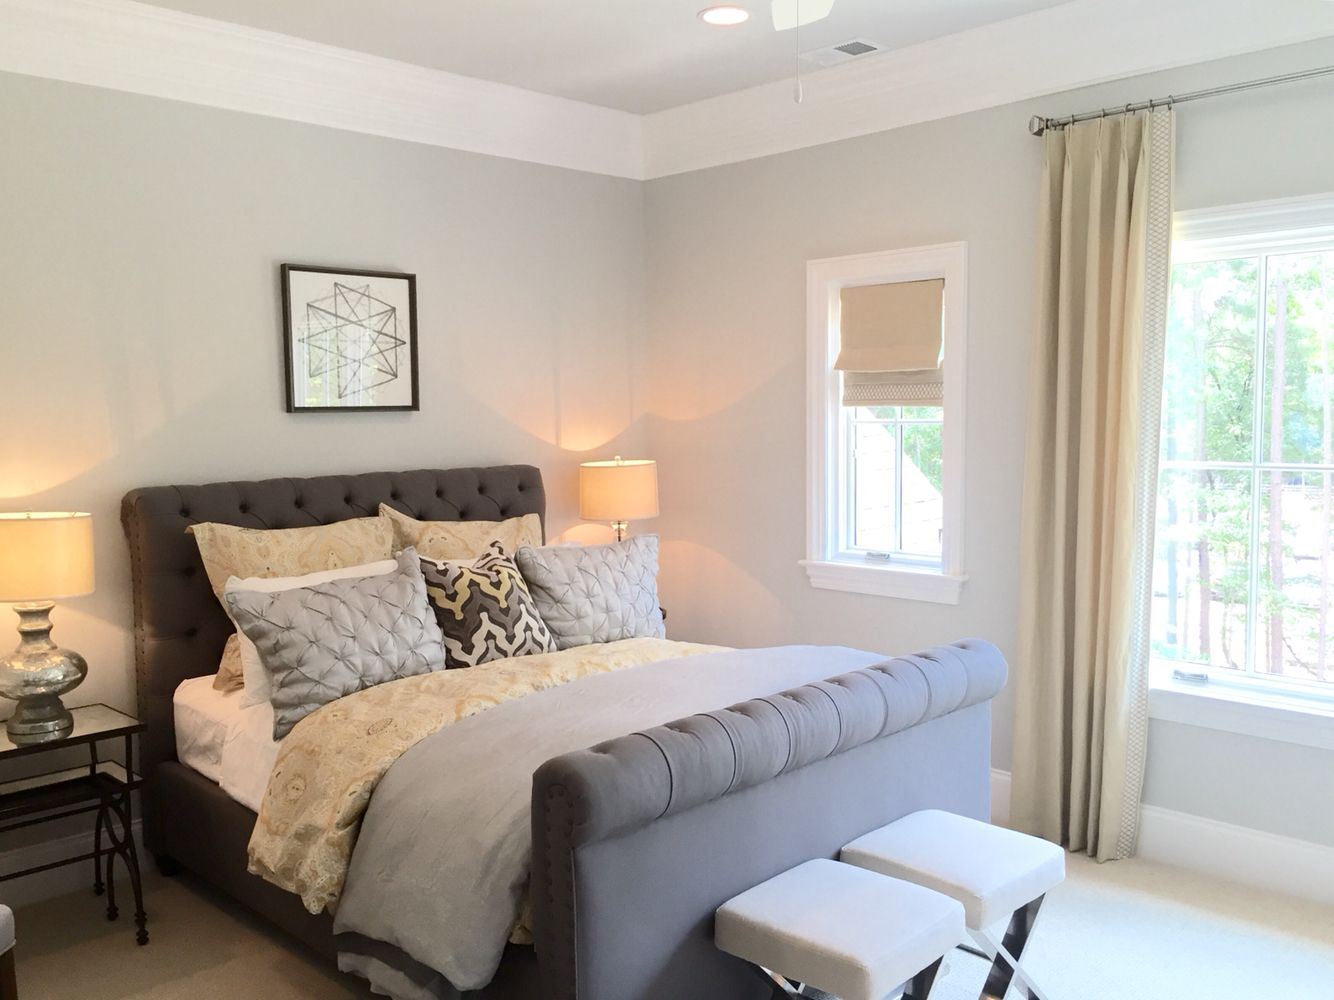 Bedroom Paint Colors Benjamin Moore best 25+ benjamin moore moonshine ideas on pinterest | benjamin